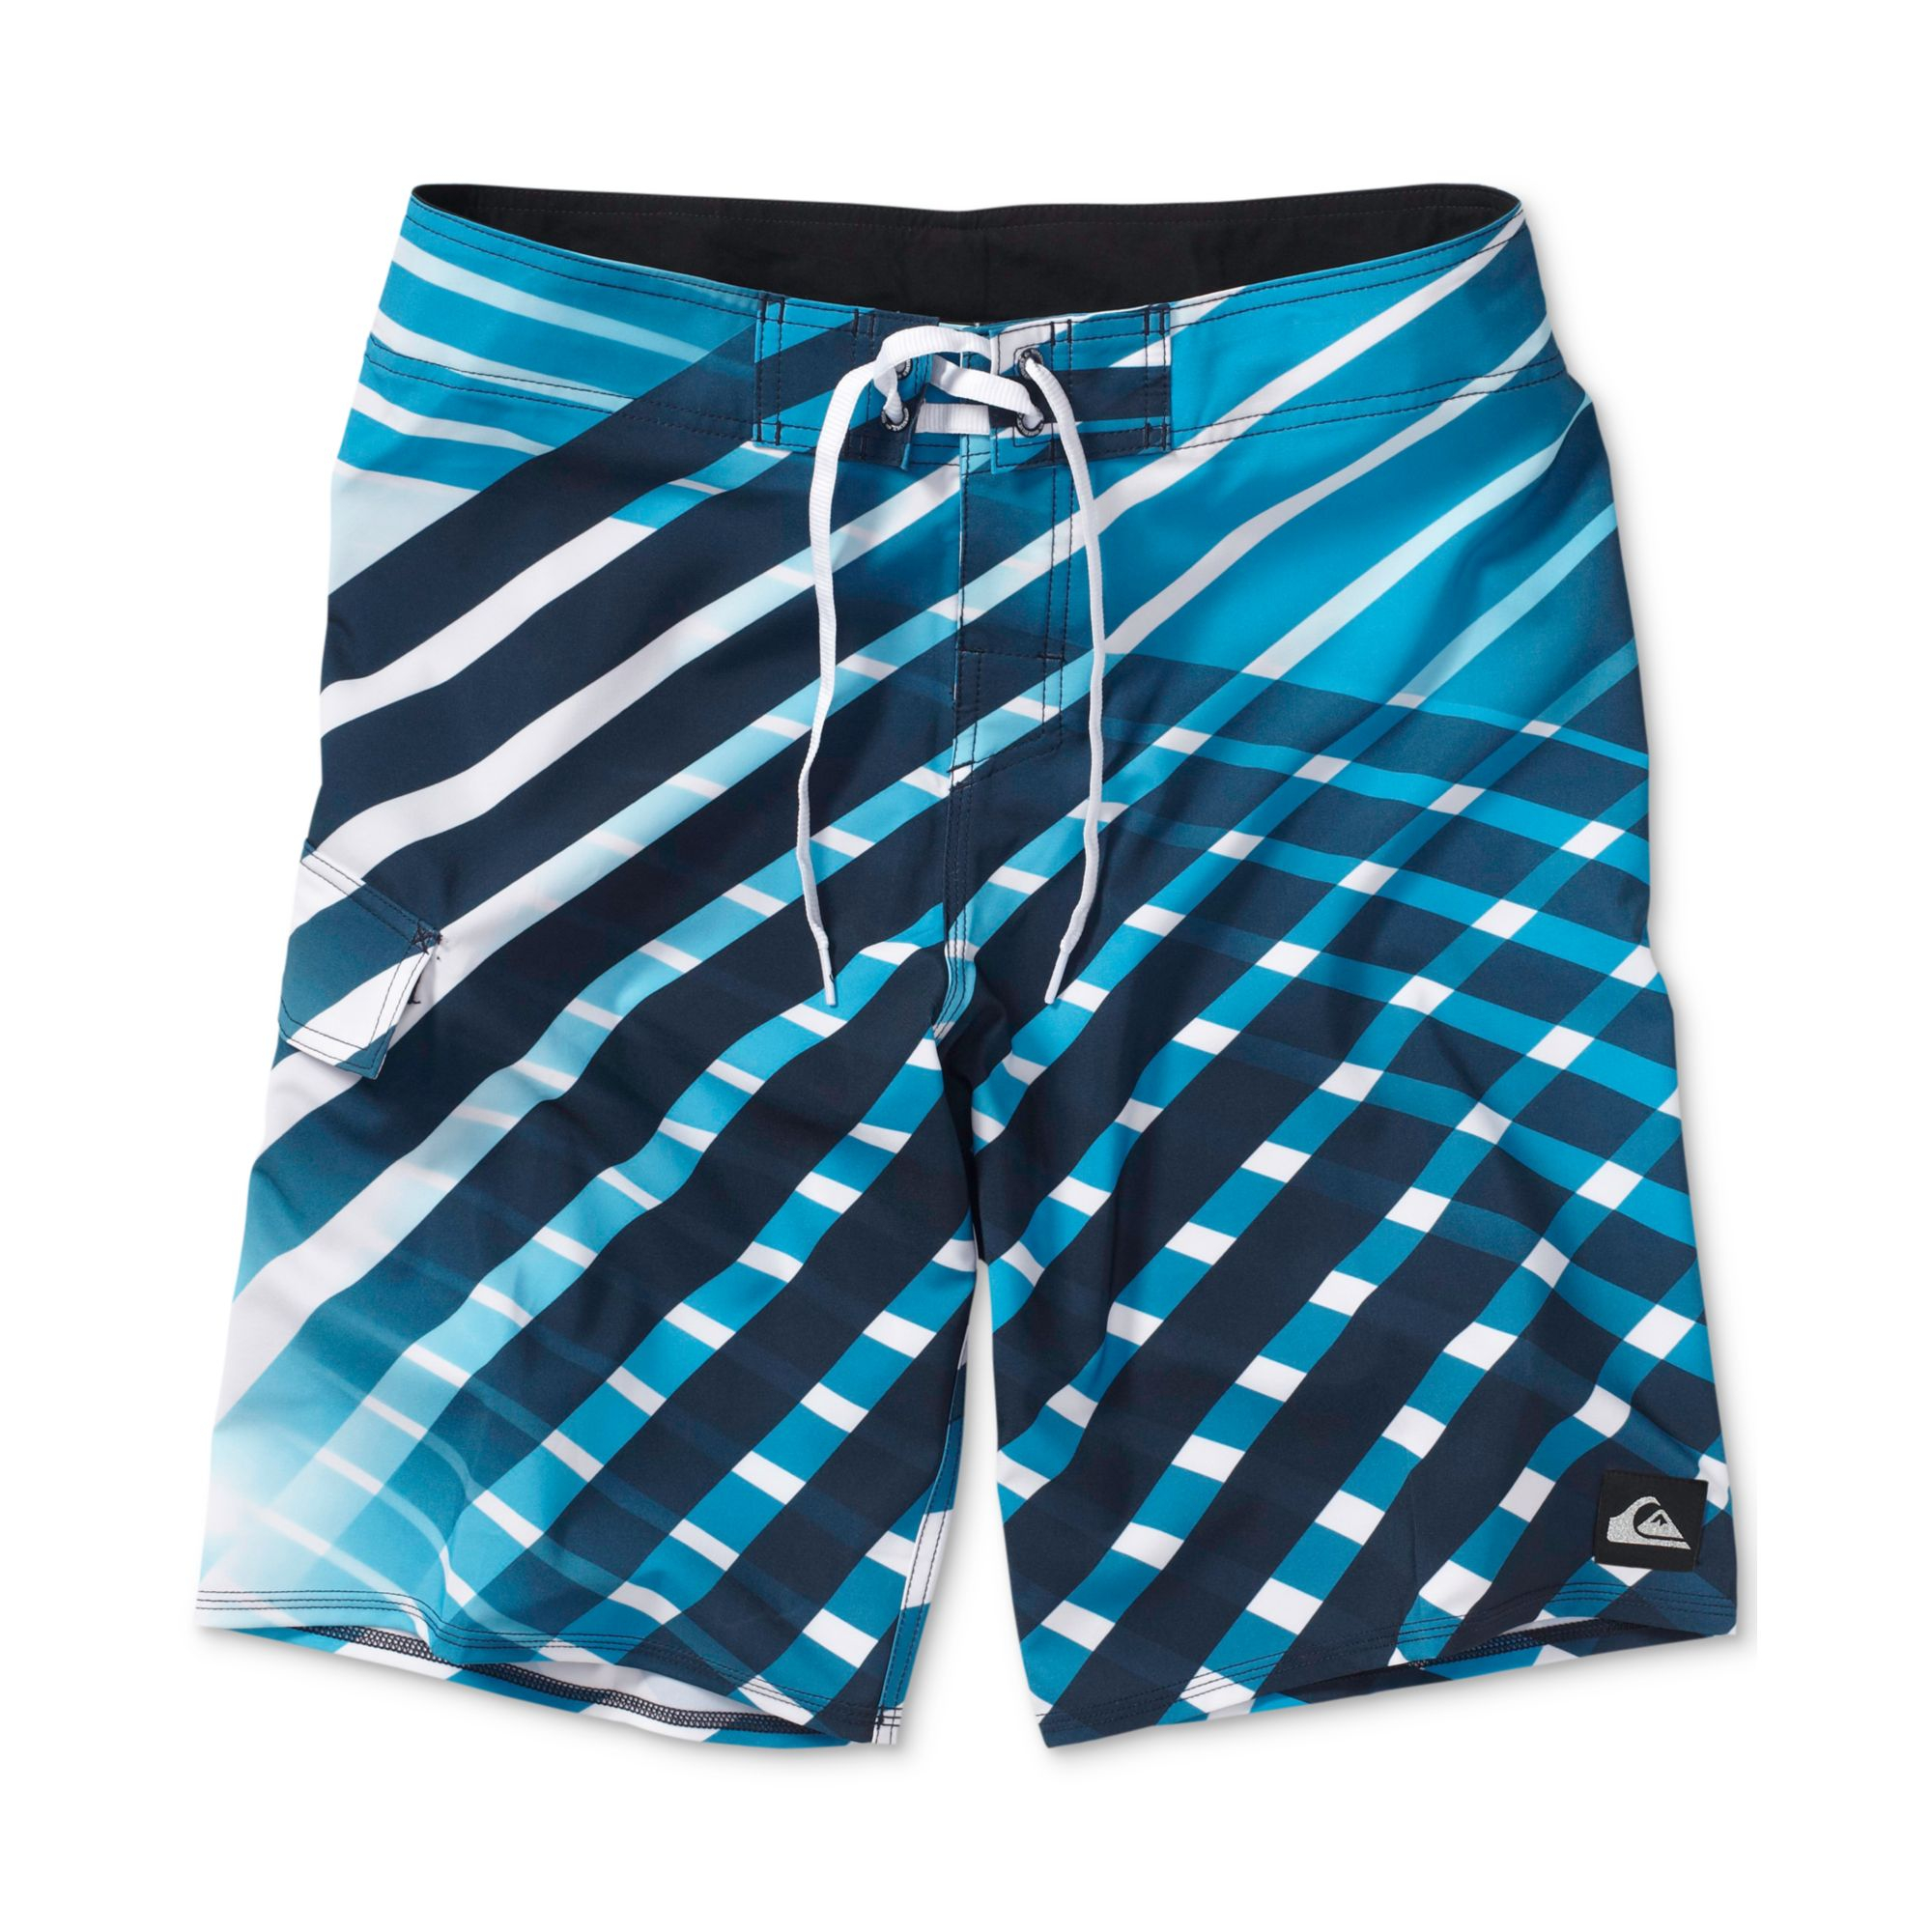 Lyst - Quiksilver Silicon Boardshorts in Blue for Men